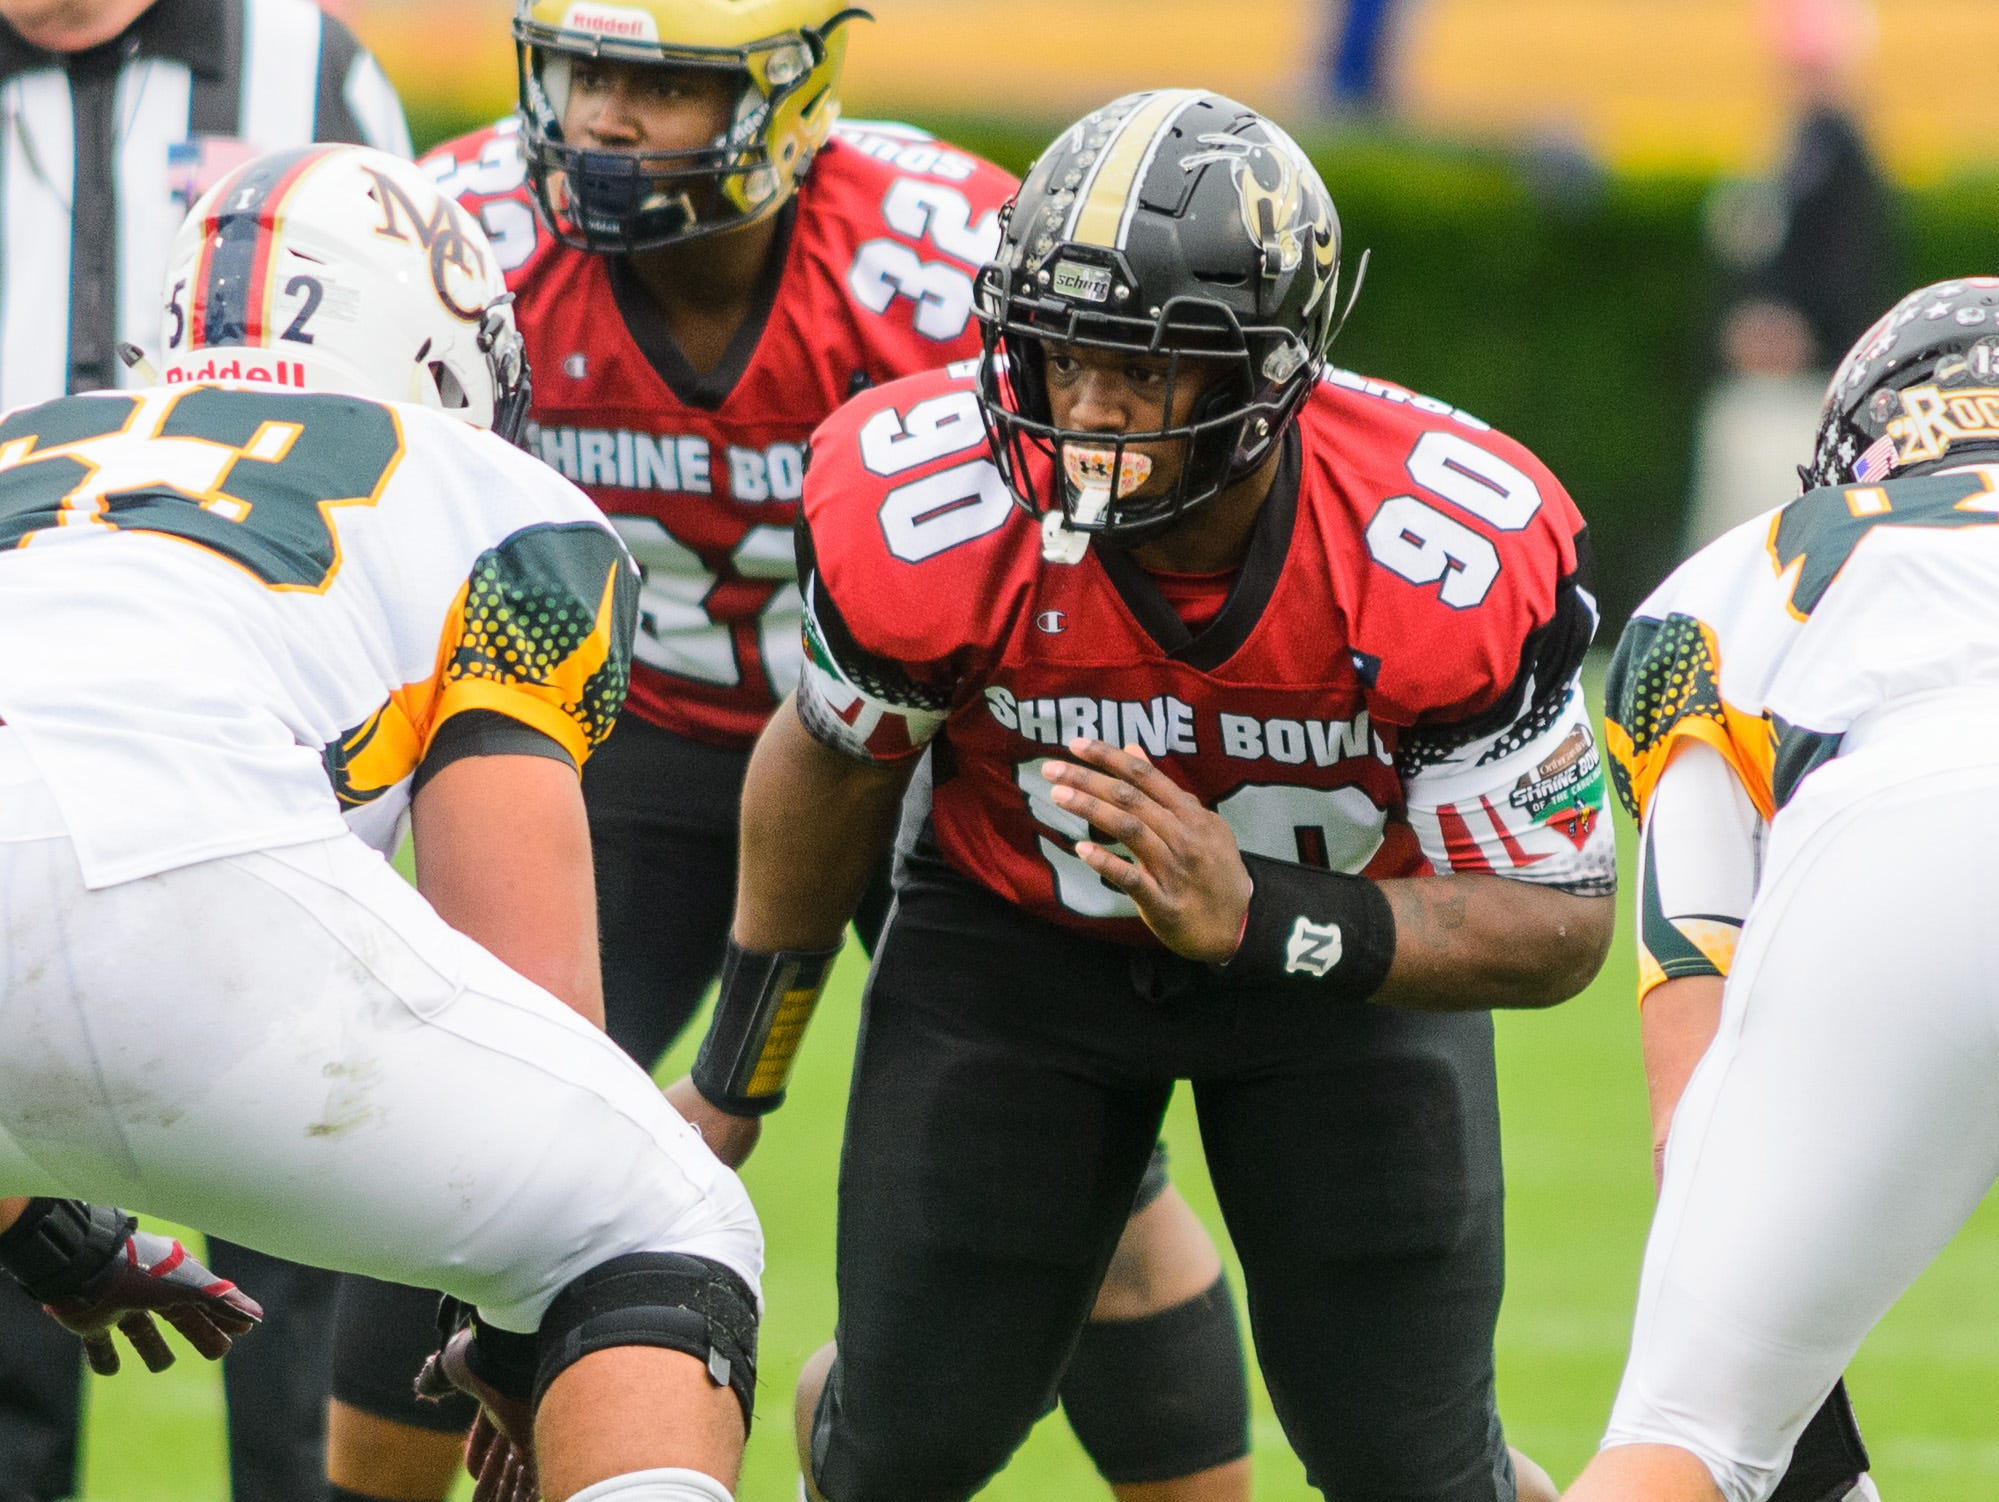 T.L. Hanna defensive lineman Zacch Pickens (90) rushes the quarterback during the 82nd annual Shrine Bowl of the Carolinas on Saturday, December 15, 2018 at Wofford's Gibbs Stadium in Spartanburg, SC.